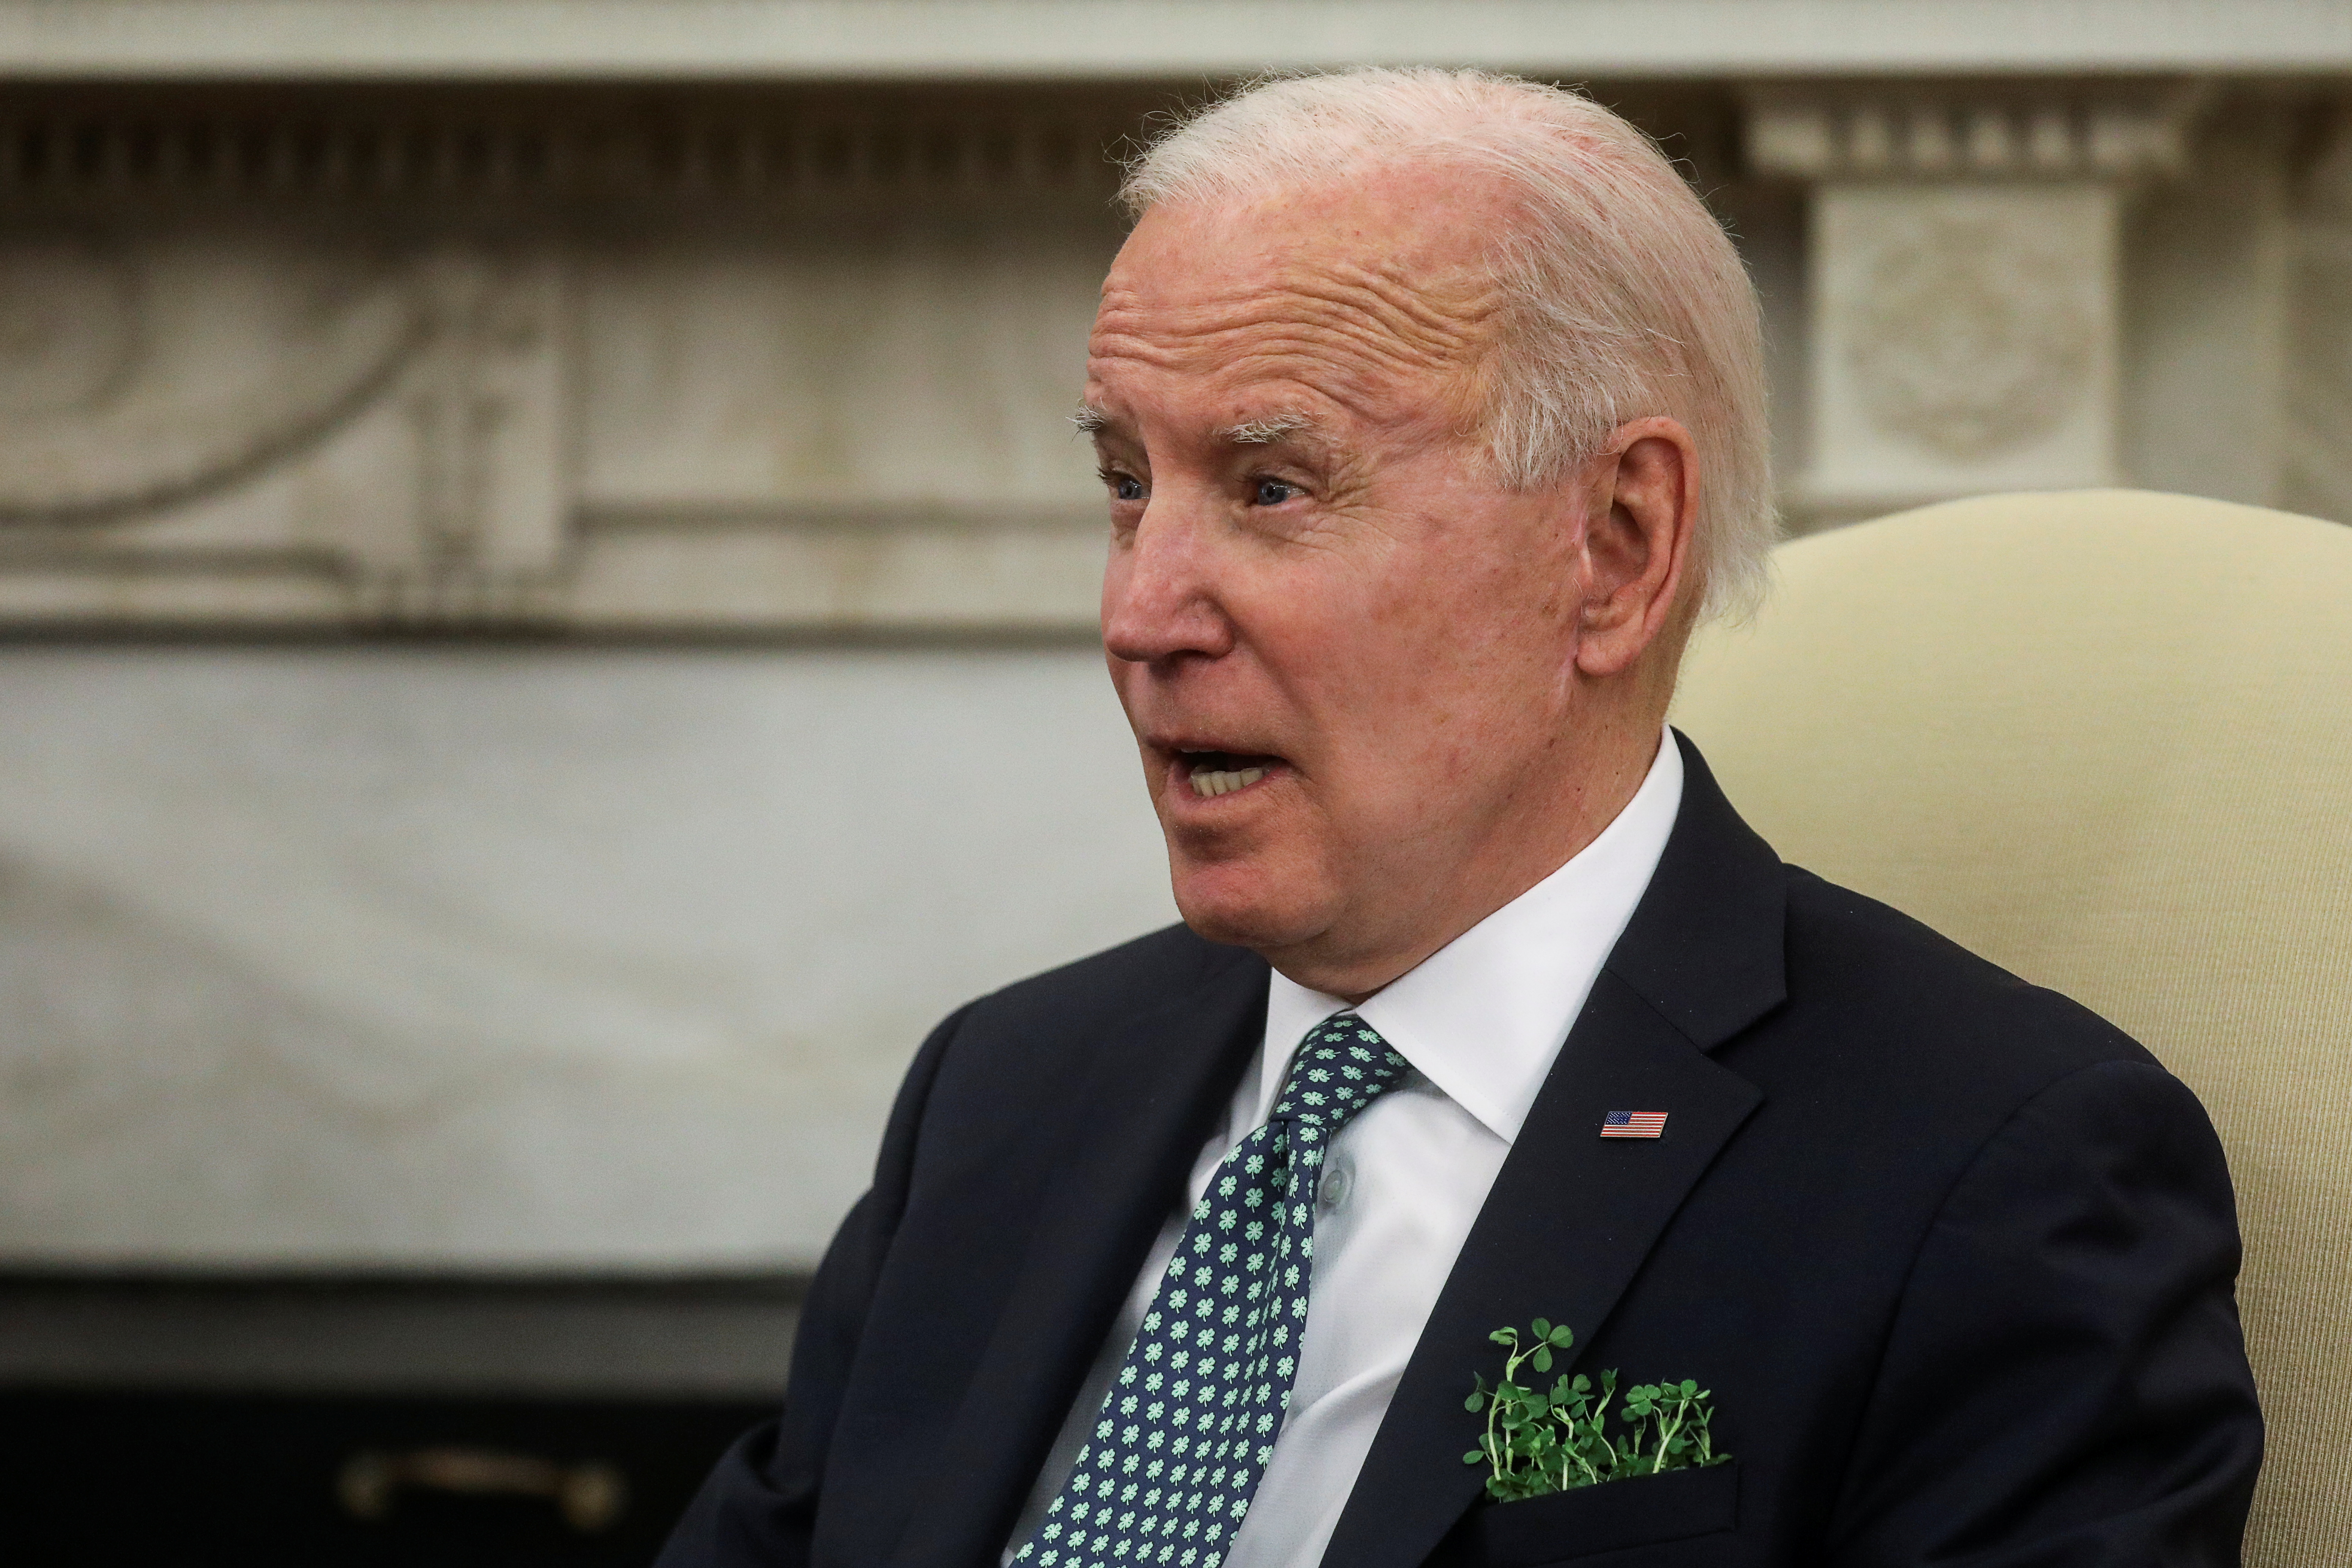 U.S. President Joe Biden wears a sprig of shamrock during a bilateral videoconference with Ireland's Prime Minister Micheal Martin  from the Oval Office at the White House in Washington, U.S., March 17, 2021. REUTERS/Leah Millis